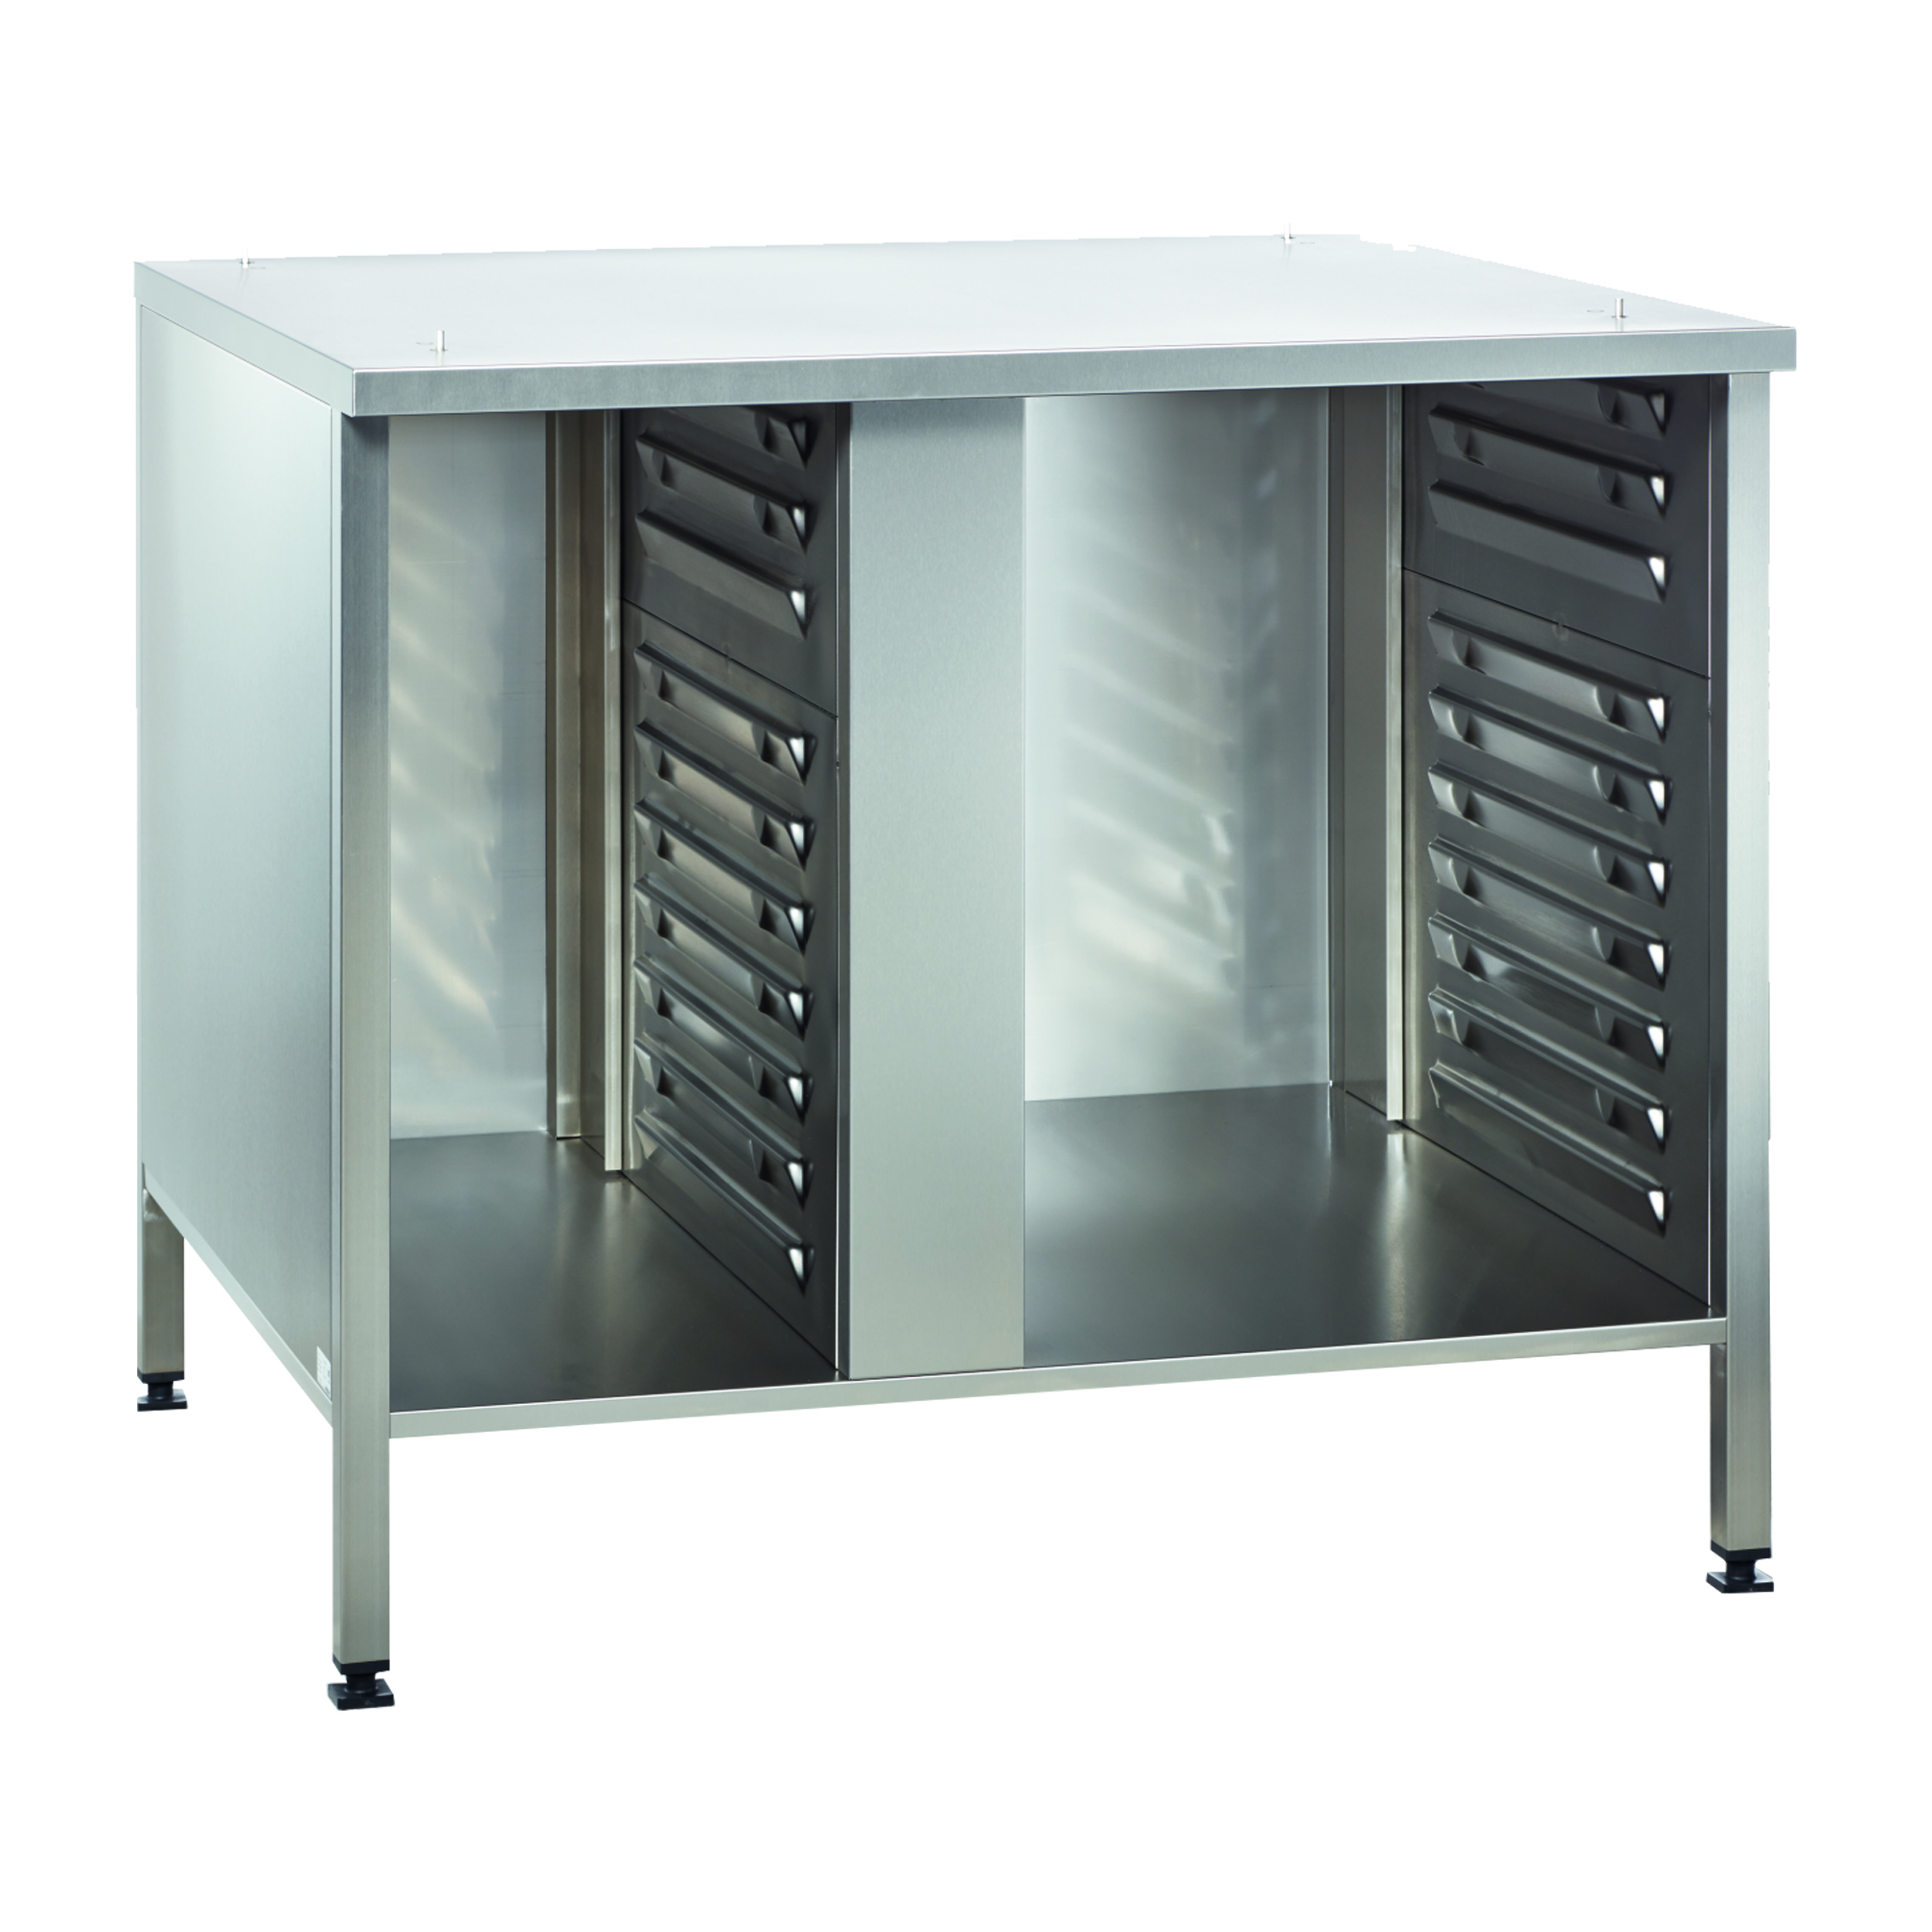 RATIONAL 60.30.343 equipment stand, oven